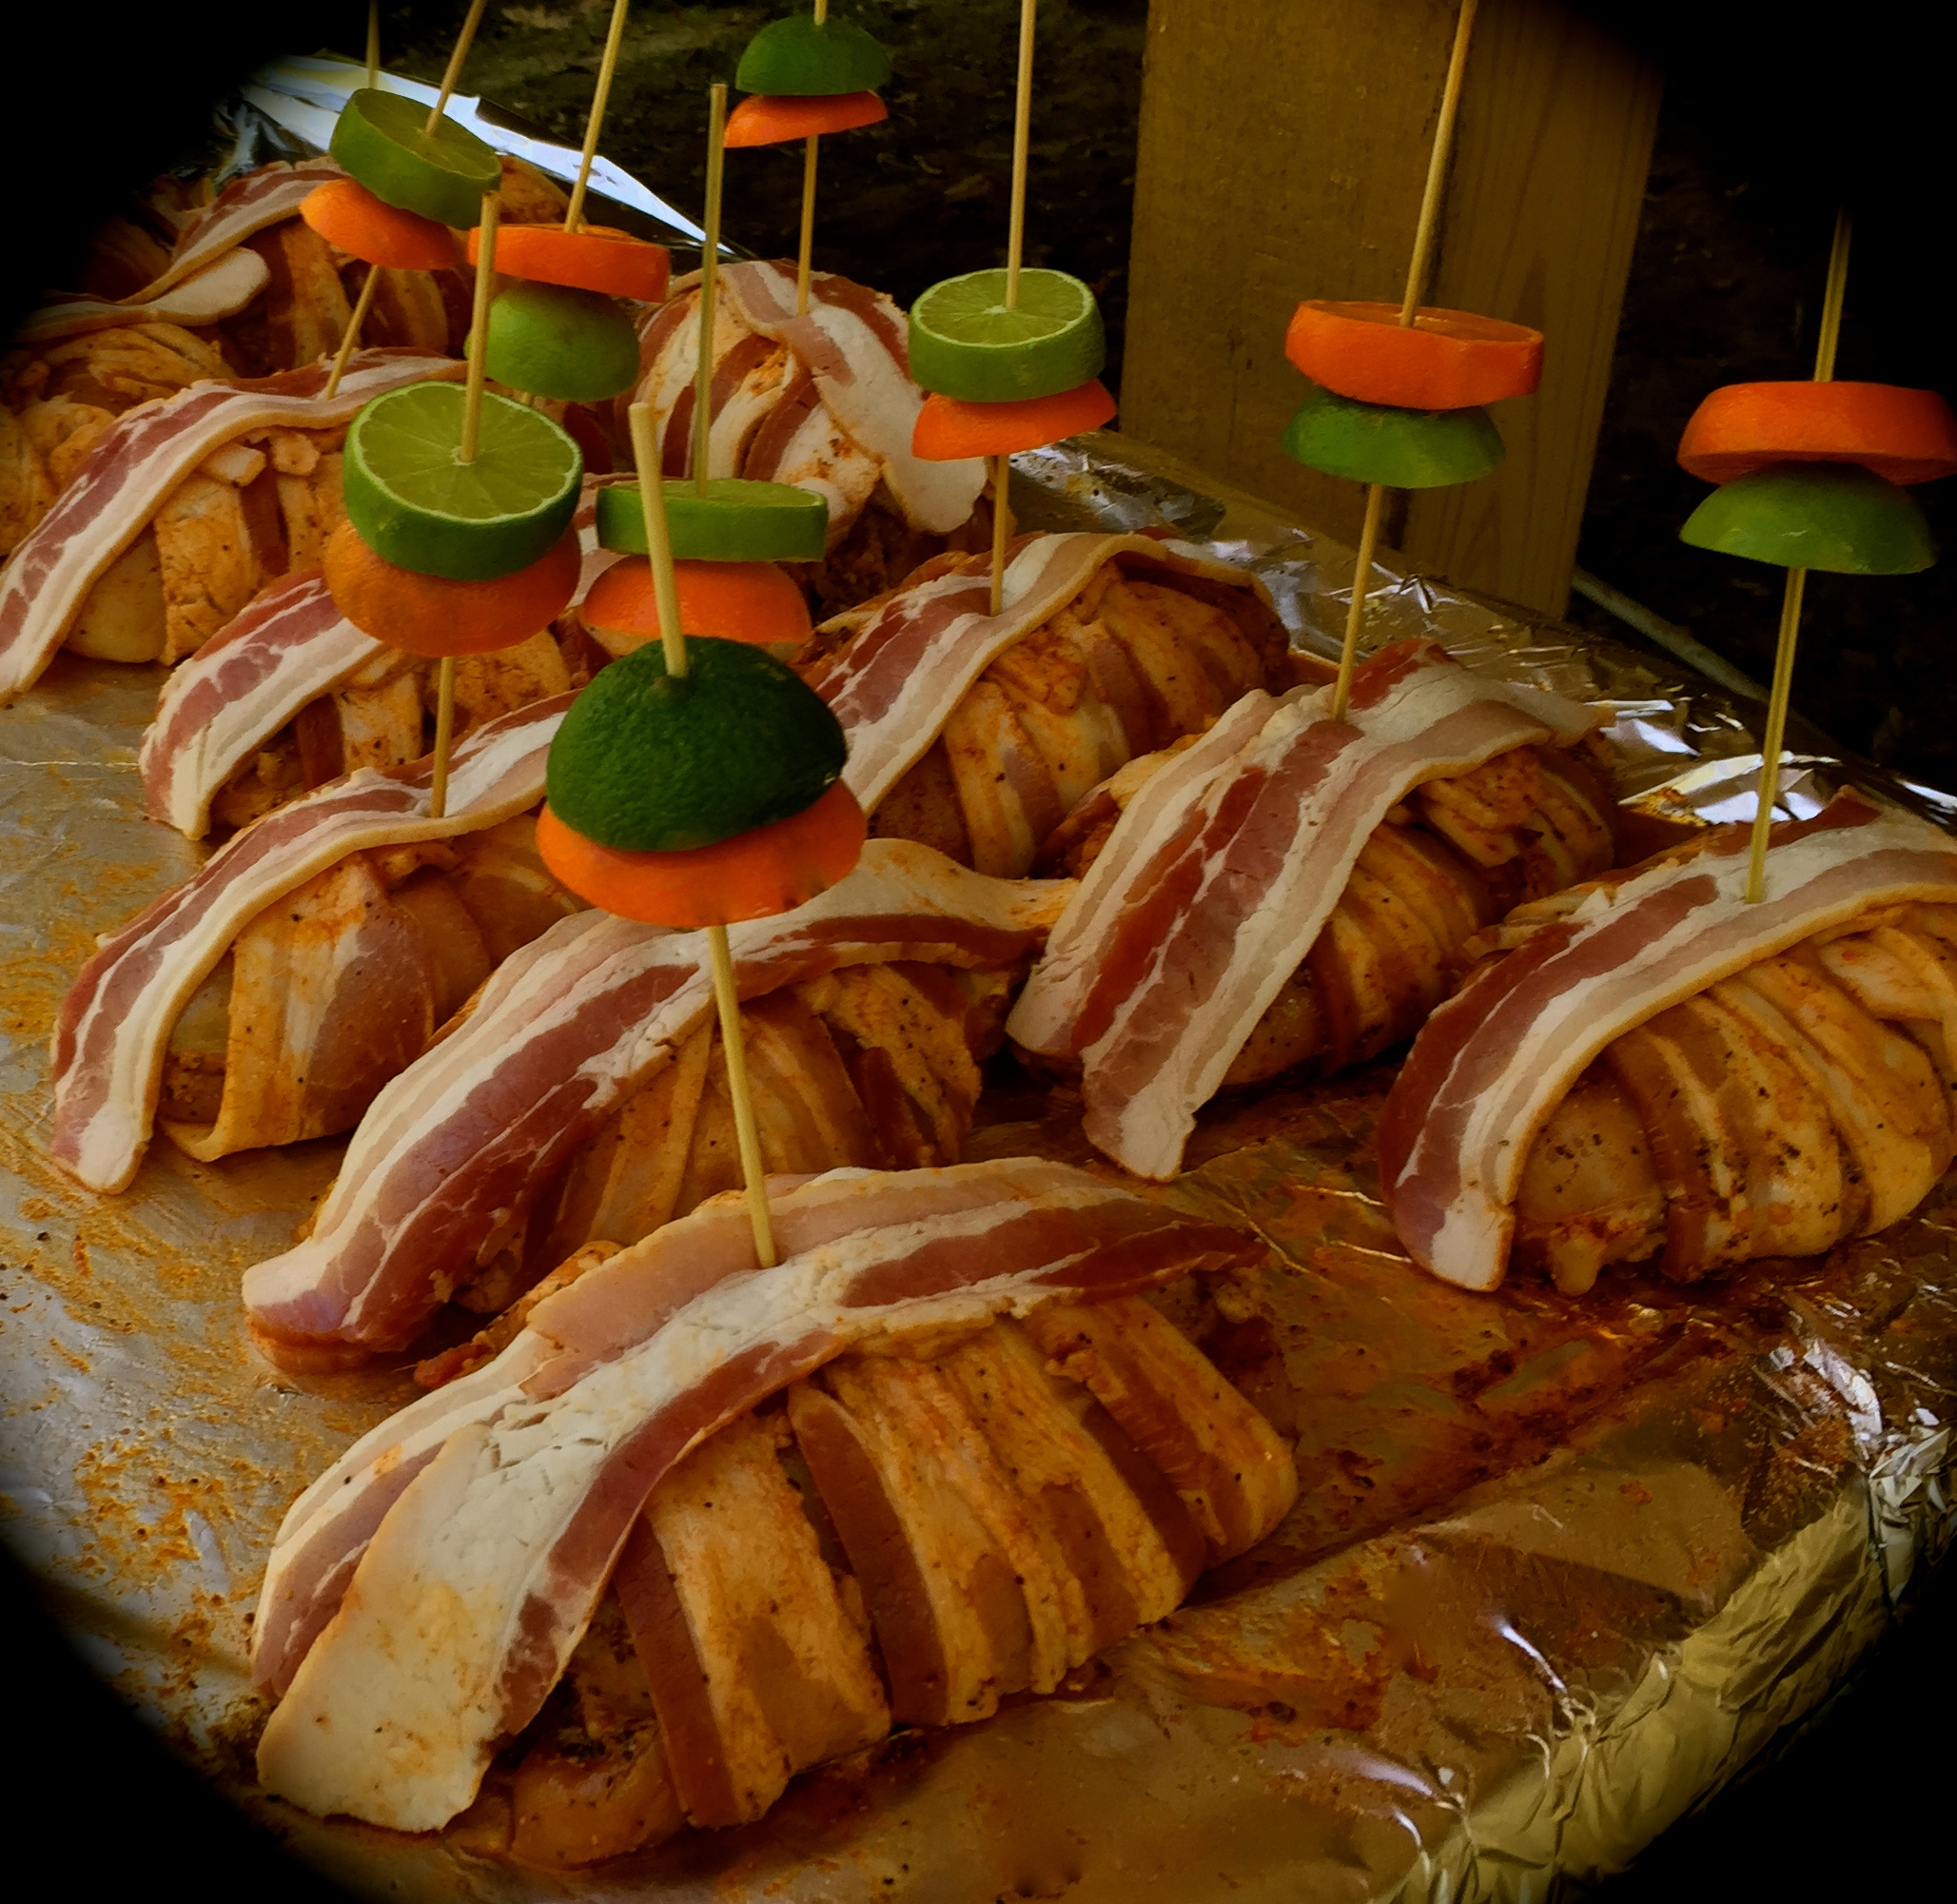 Bacon wrapped chicken bricks adorned with citrus umbrellas